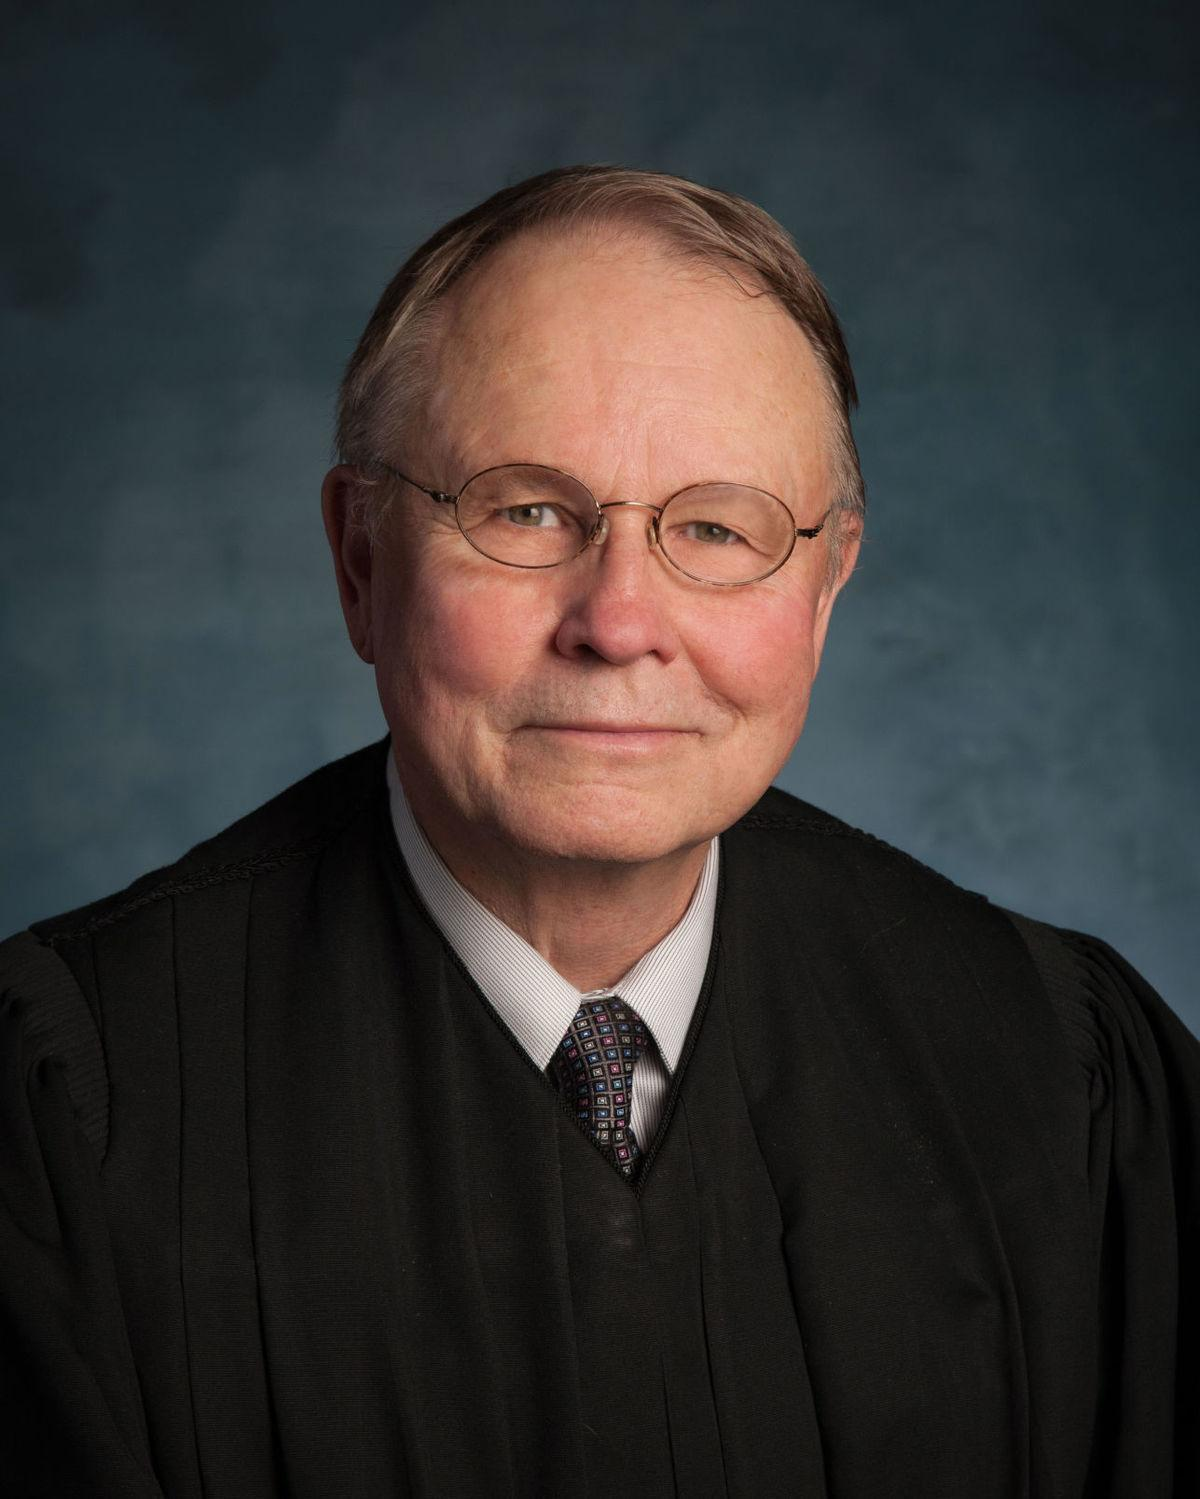 Justice Wright